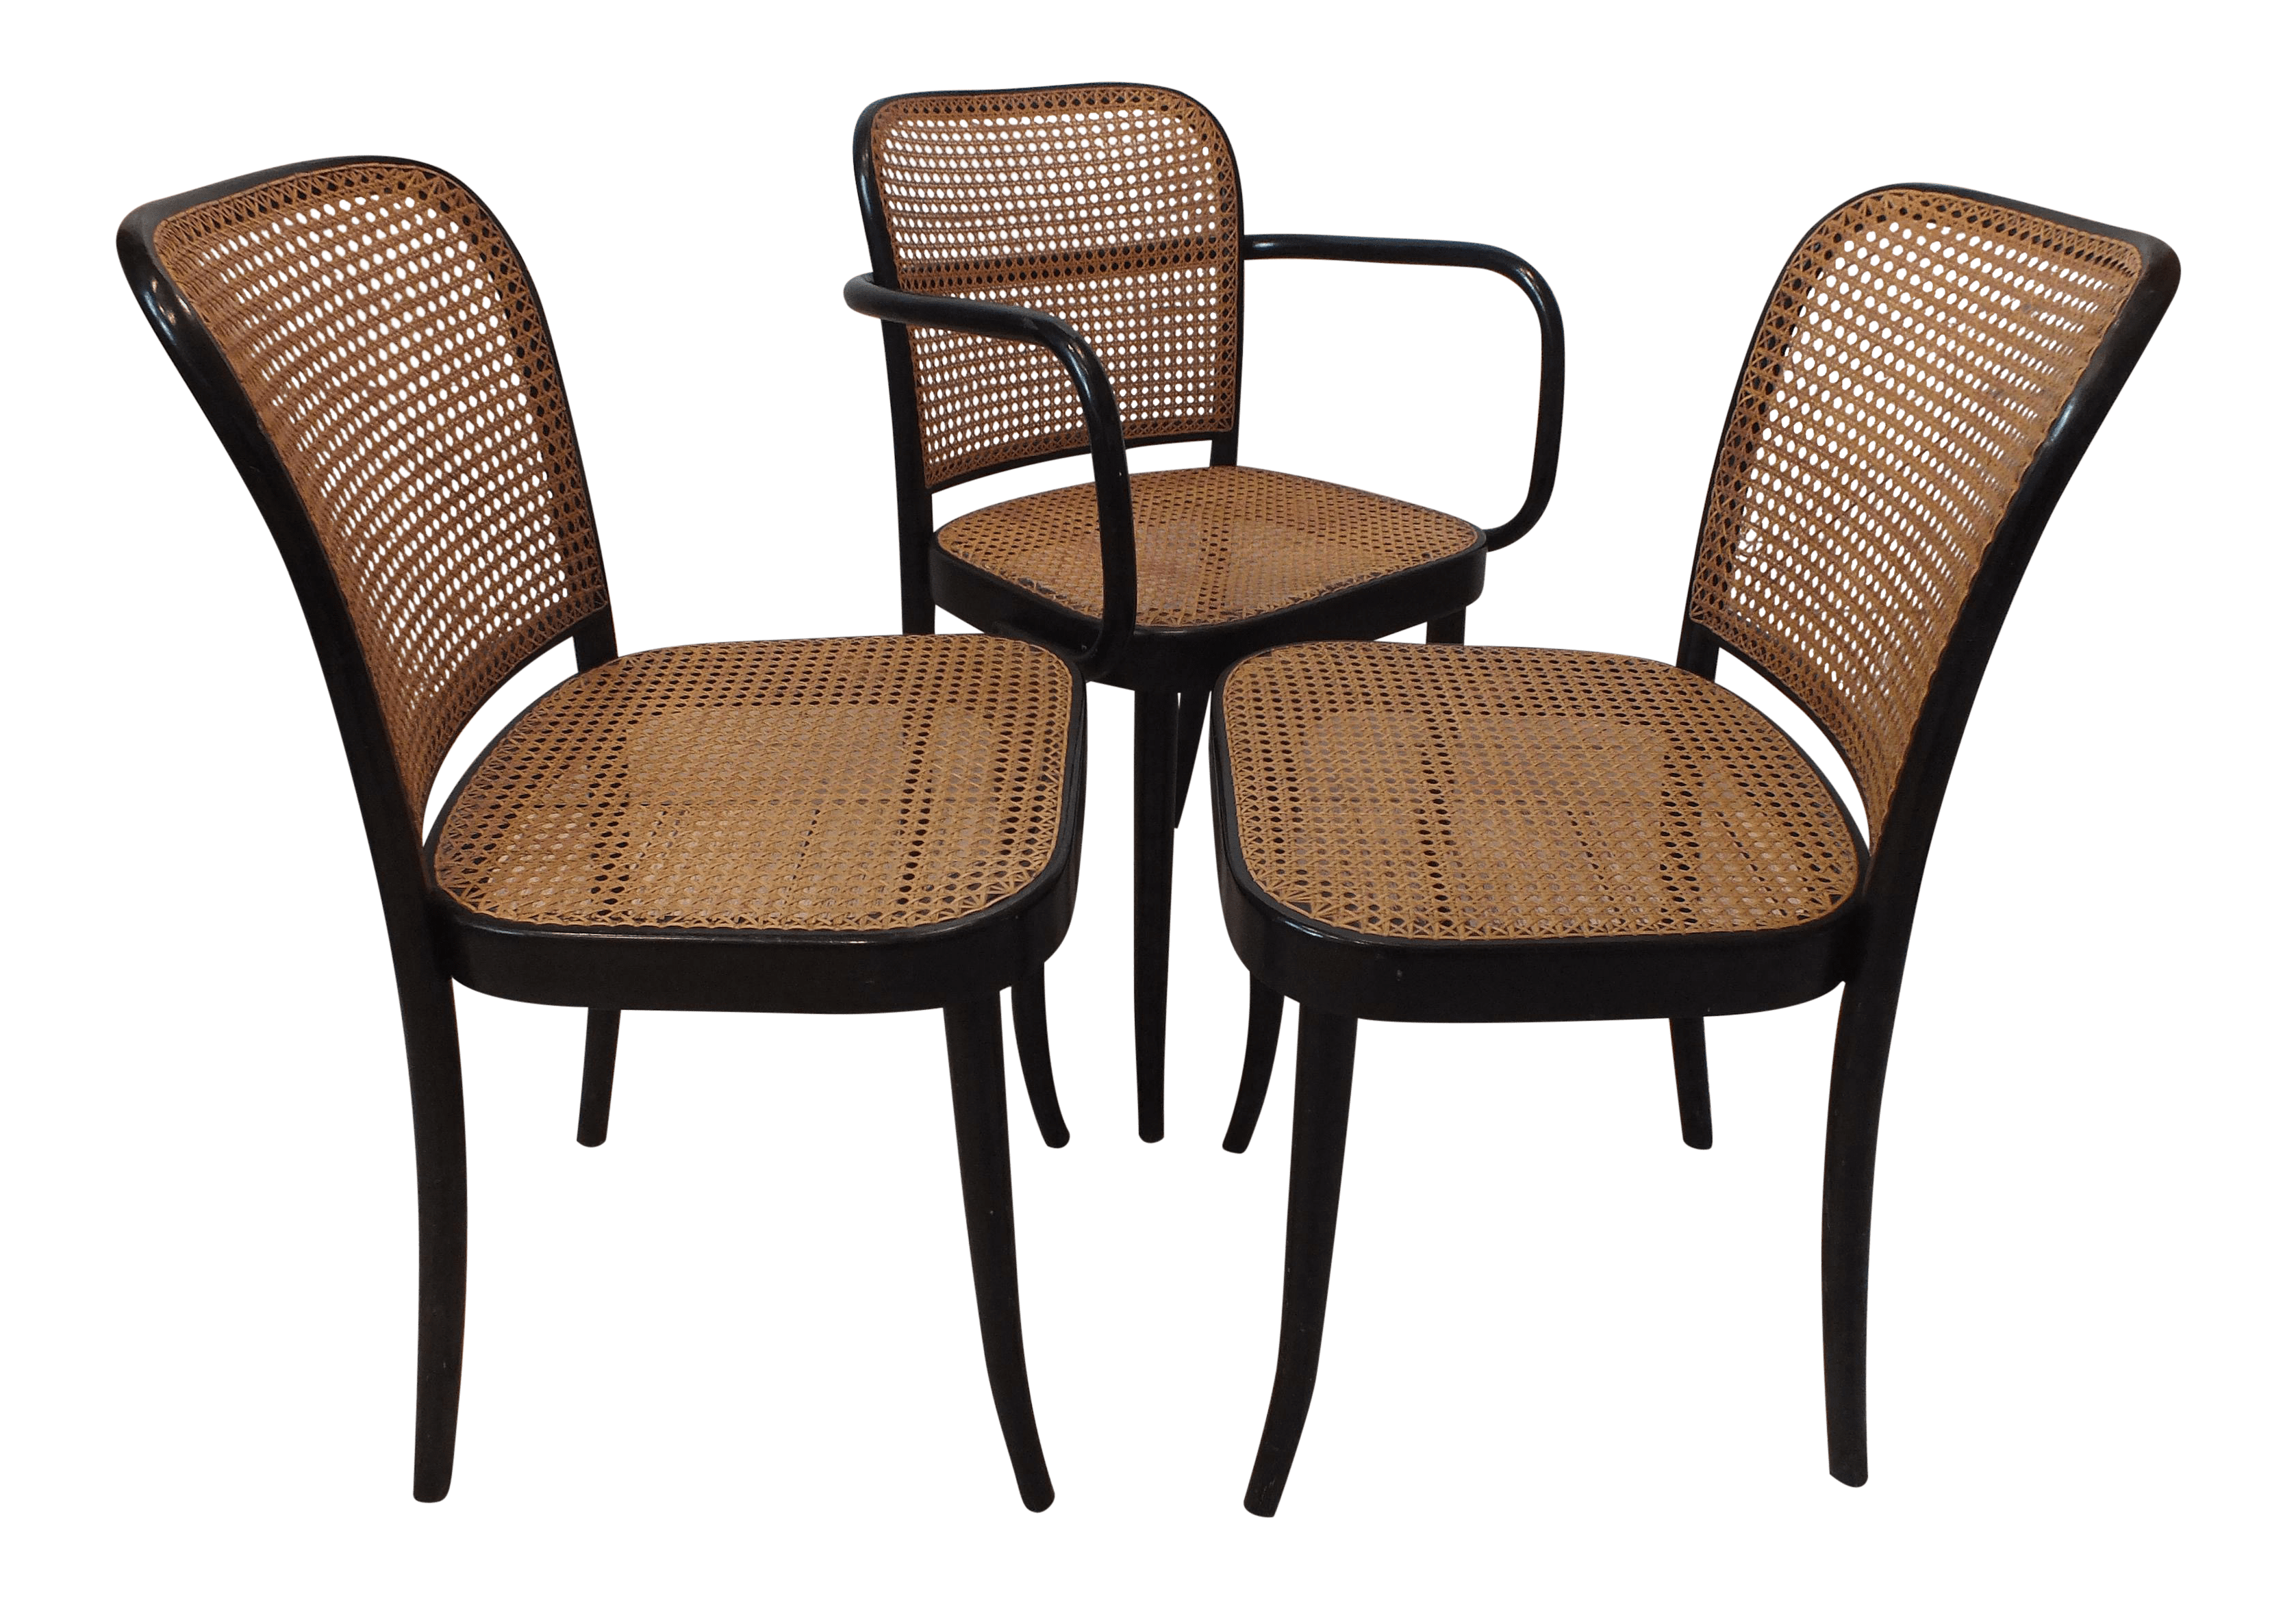 where can i buy cane for chairs lightweight camp vintage thonet prague bentwood set of 3 chairish